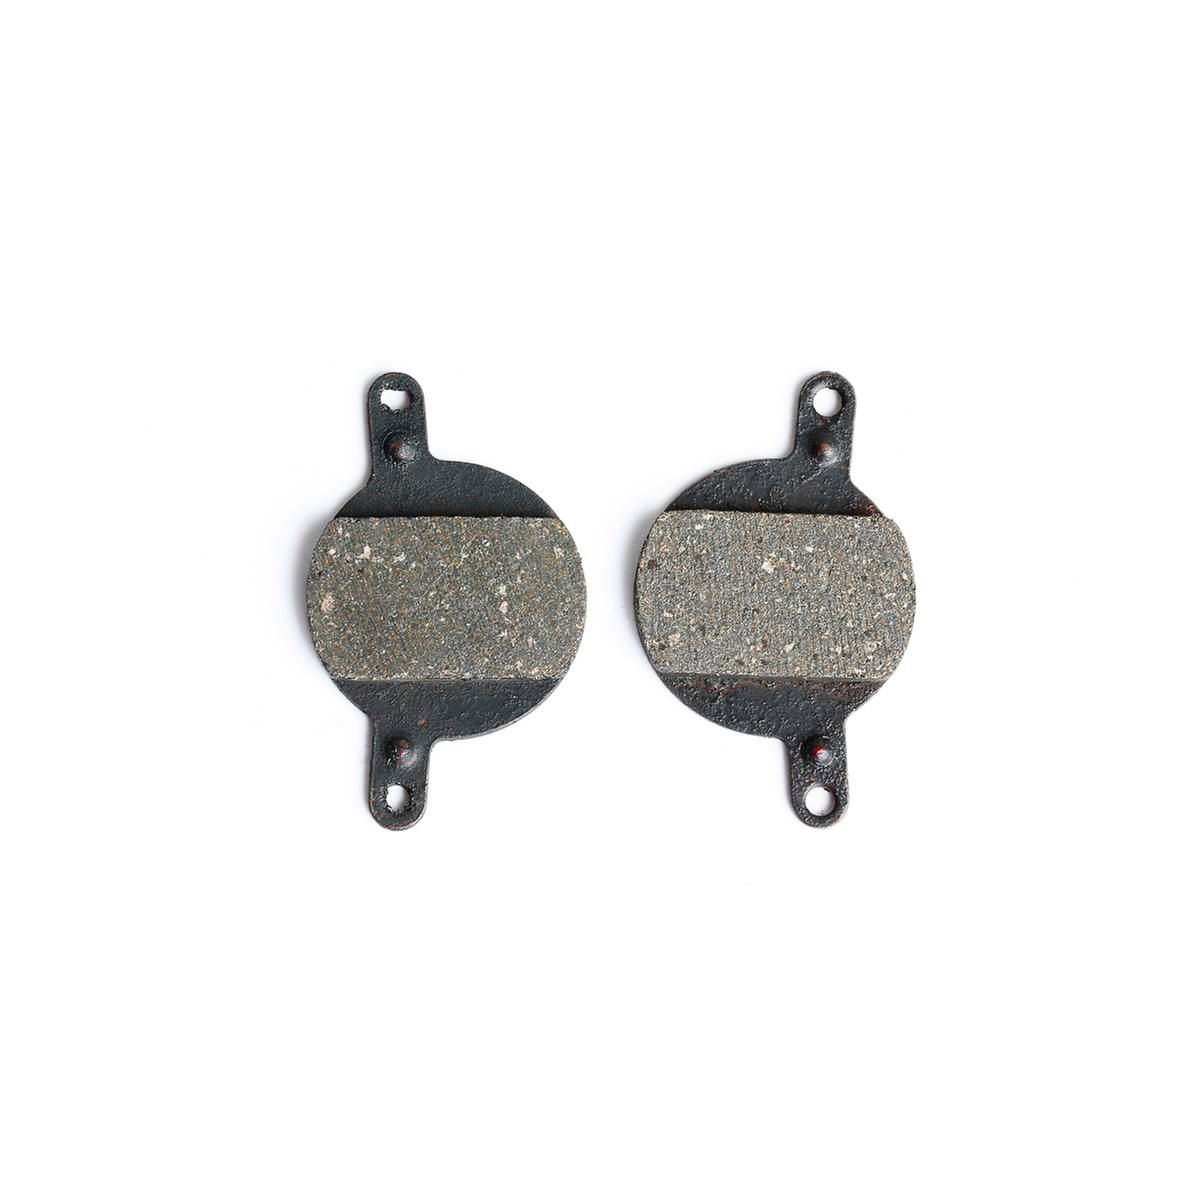 disc brake pads for Julie